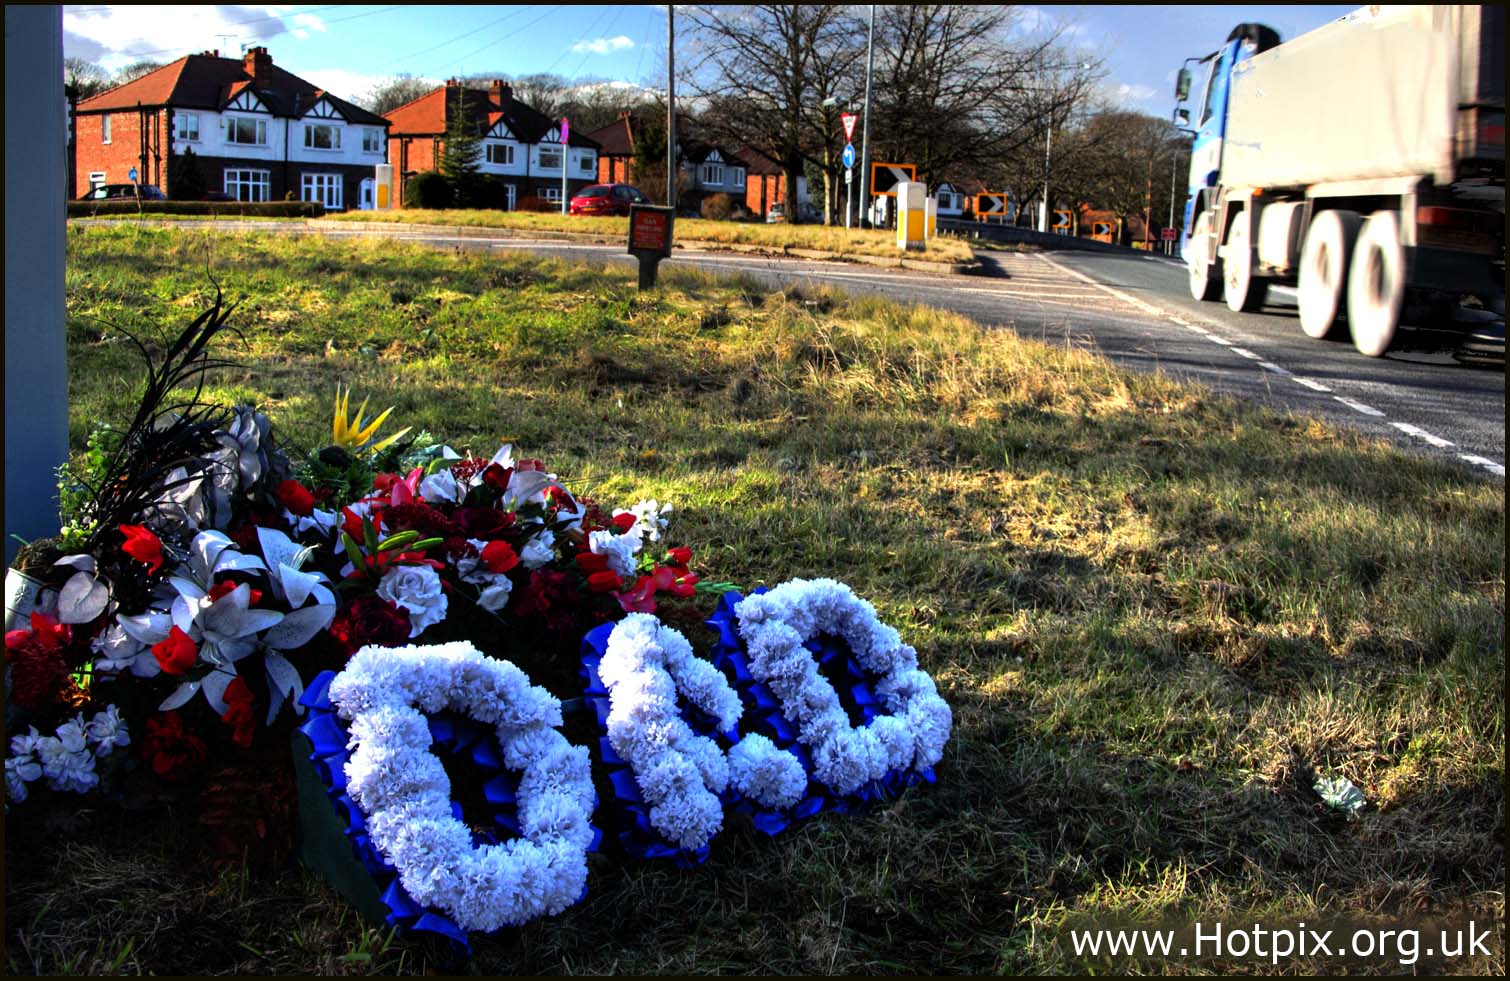 kevin,pickstock,rudheath,northwich,cheshire,car,crash,bike,motor,motorbike,fatality,fatal,death,died,dead,accident,A556,Chester,by,pass,bypass,hartford,rd,road,junction,leighton,hospital,UK,danger,safety,flowers,dad,remember,contemplate,mortality,mortal,RIP,family,june,billie,Matthew,sad,sadness,Anthony,hotpics,hotpic,hotpick,hotpicks,sex,sexy,hotpix!,hotpix.rocketmail.com,hotpixuk.rocketmail.com,contact.tony.smith.gmail.com,tony.smith.gmail.com,tonys@miscs.com,tony.smith@mis-ams.com